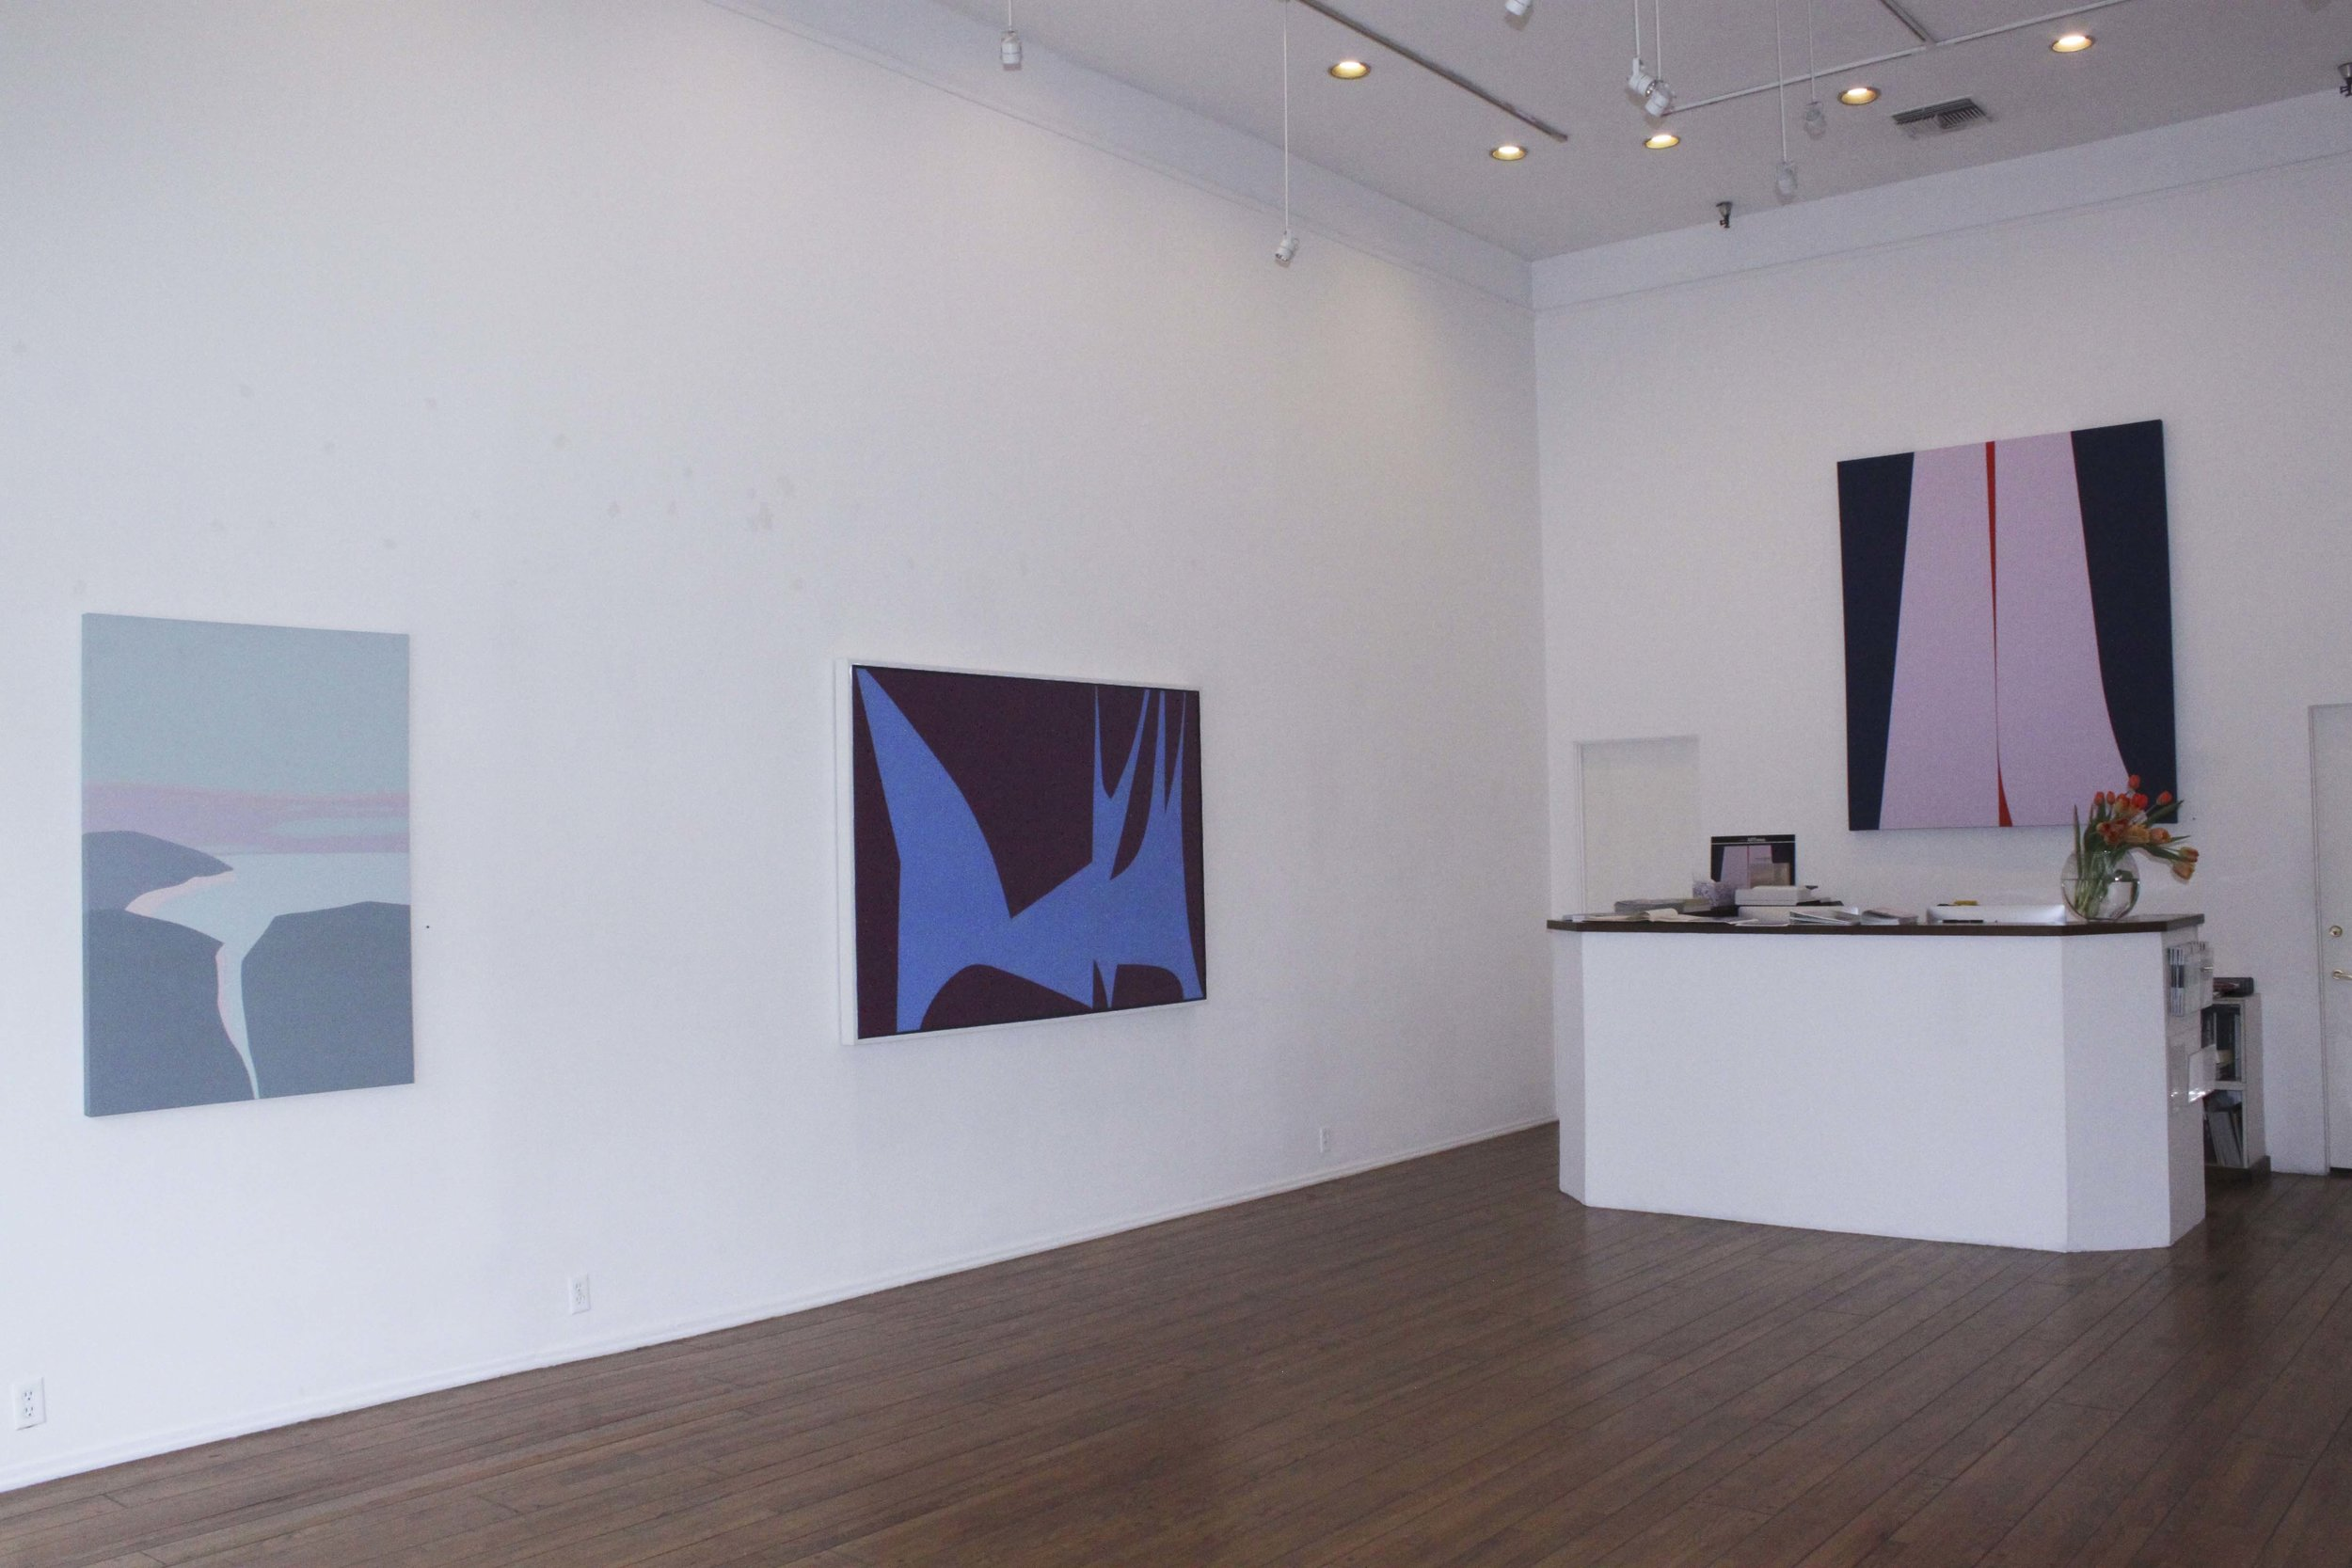 Install3.jpg Install5.jpg Helen Lundeberg / Lorser Feitleson: And the Synergy of Geometric Abstraction